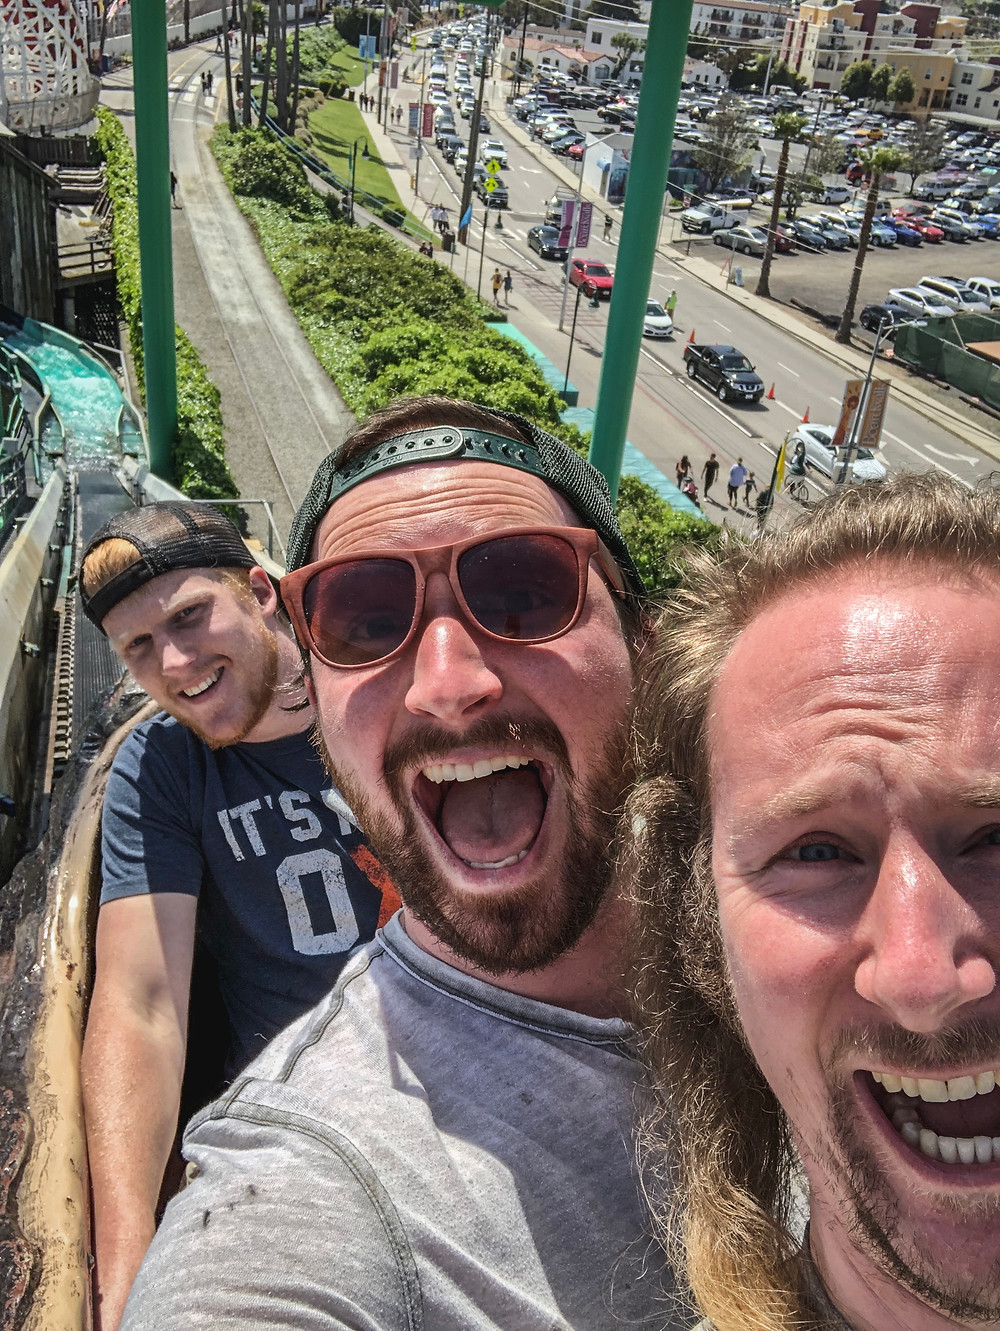 Sam Salerno, Jordan Honer, and Joey Wallberg riding the Logger's Revenge at the Santa Cruz Beach Boardwalk